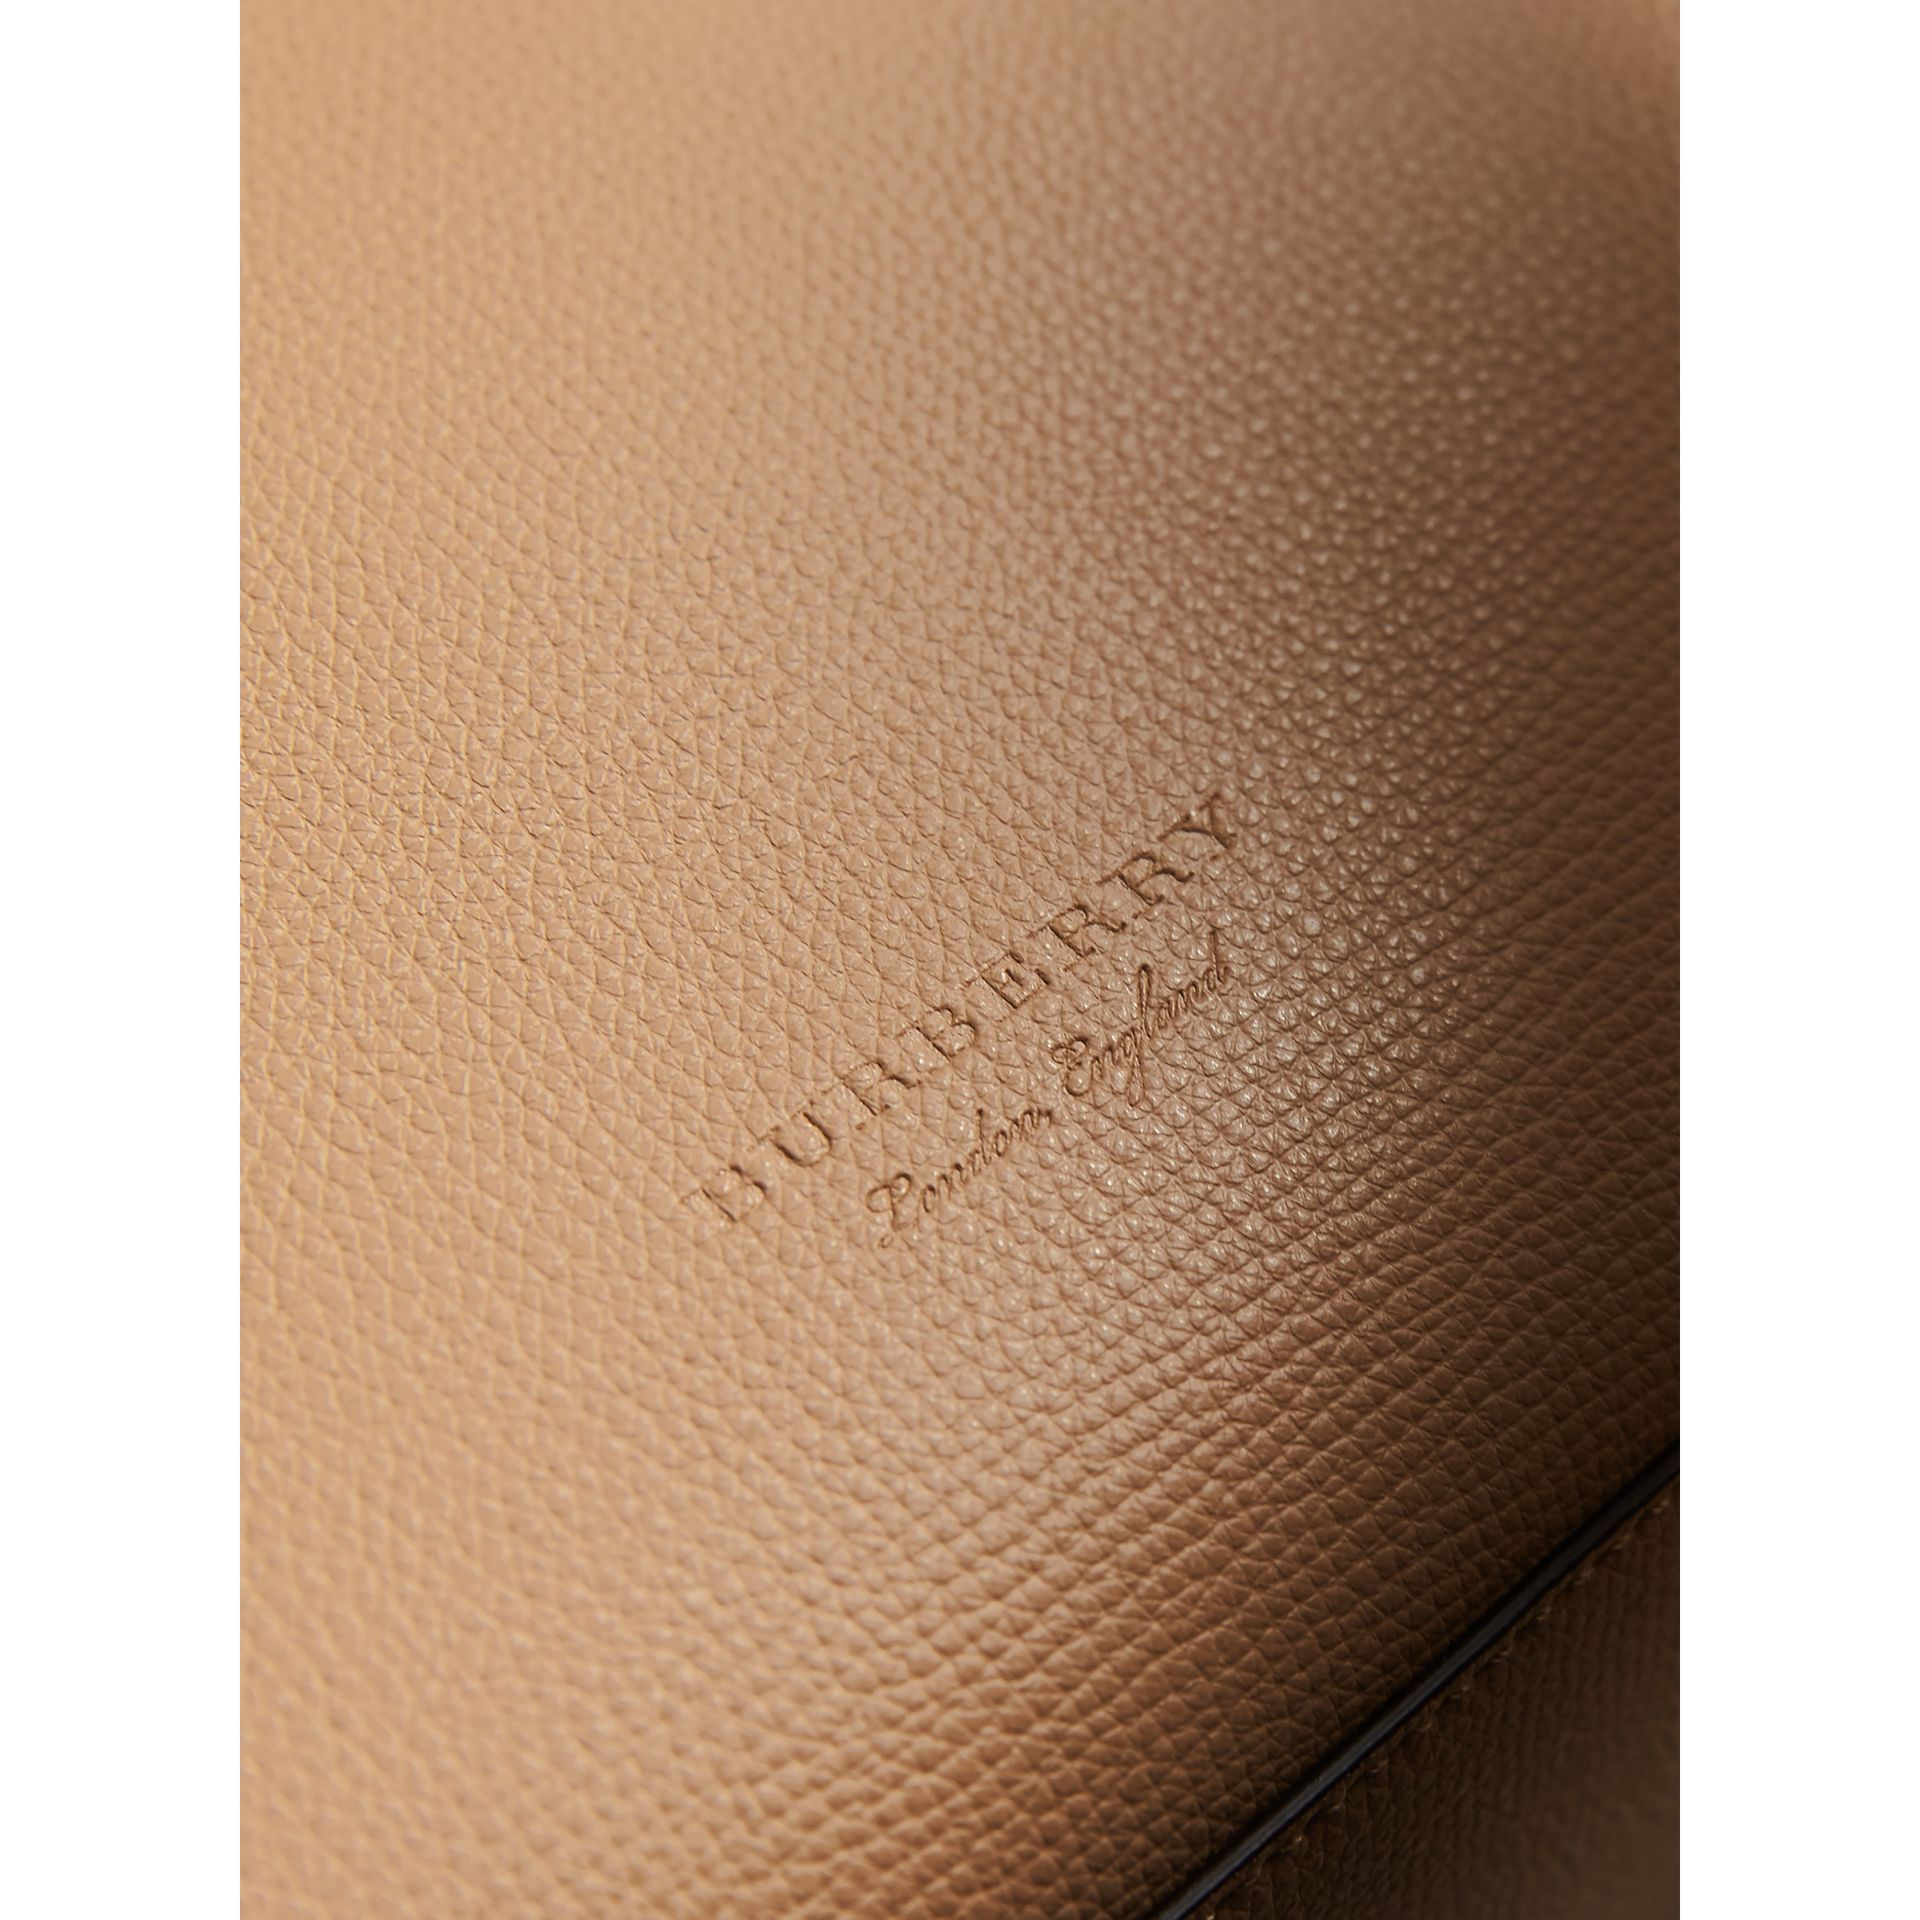 Medium Coated Leather Tote in Mid Camel - Women | Burberry - gallery image 6